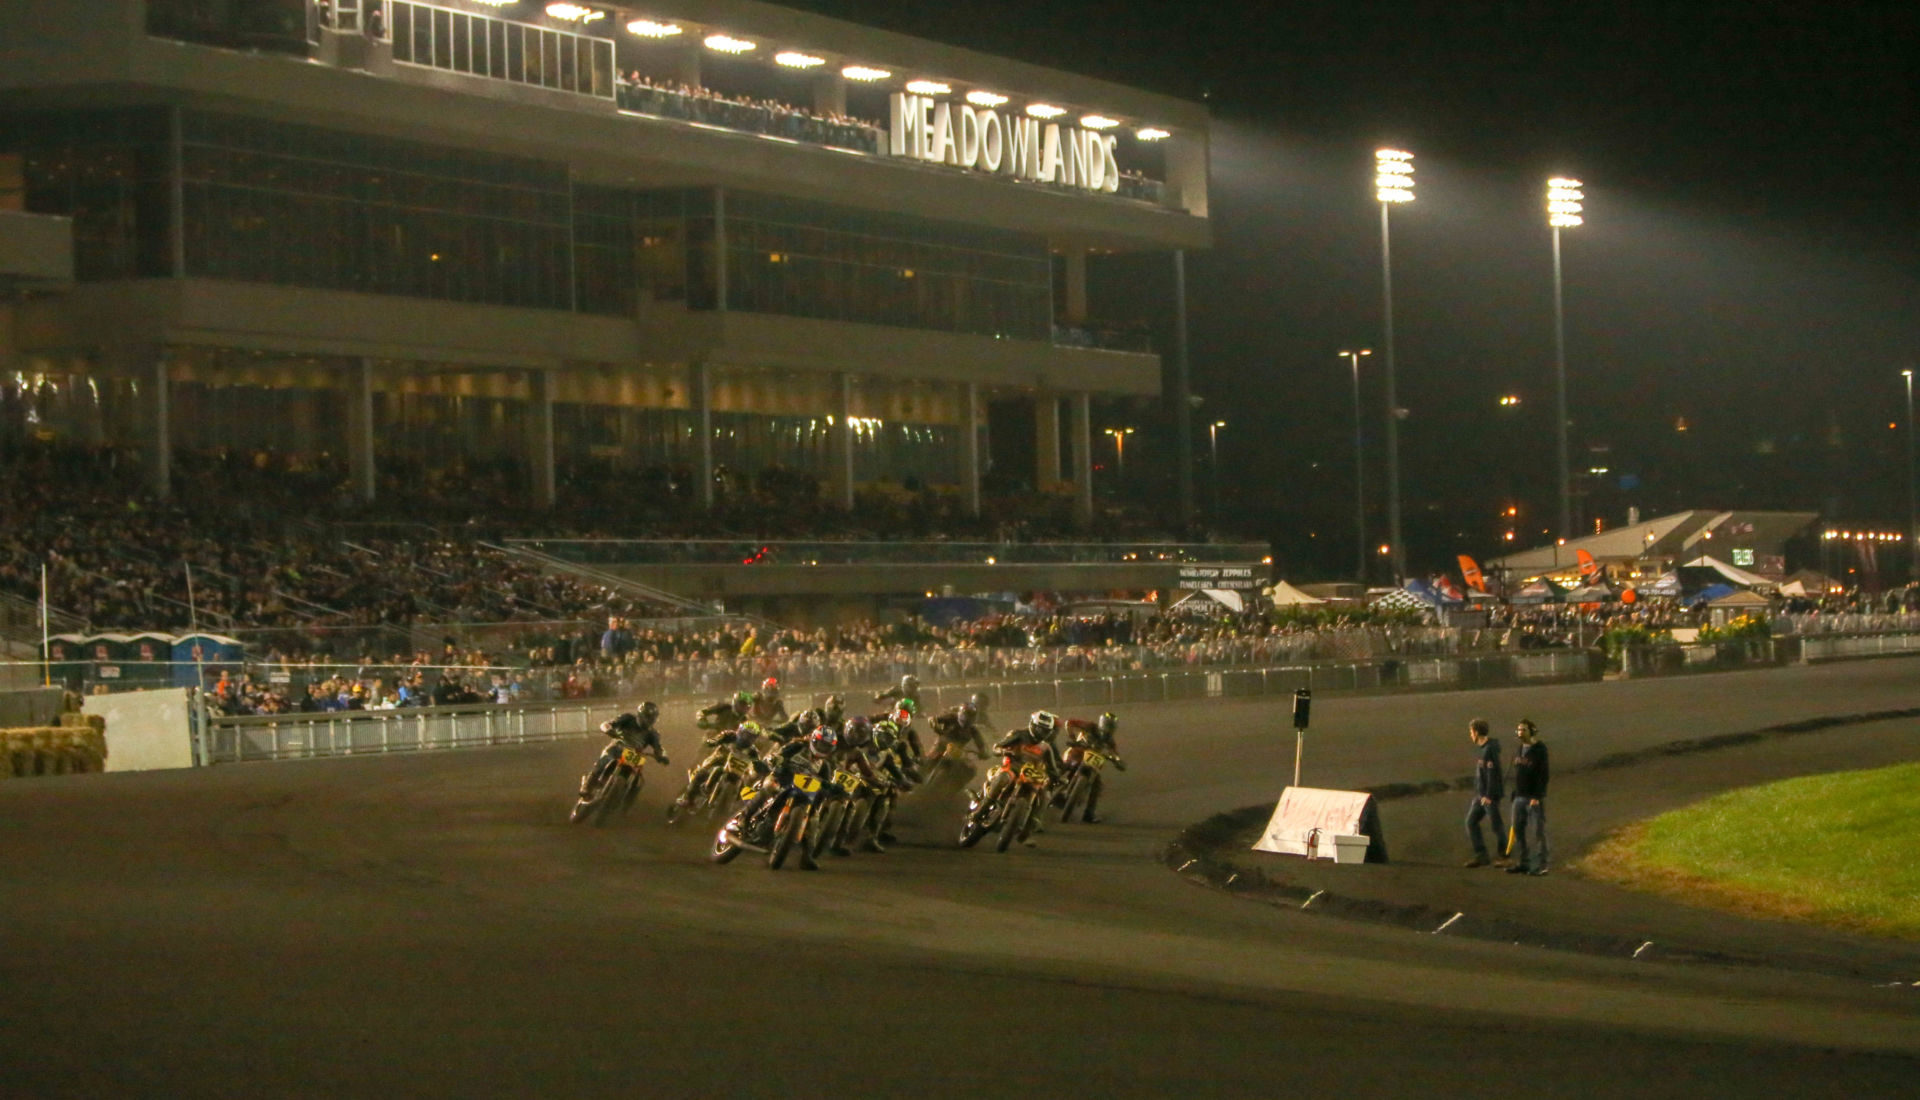 American Flat Track action at the Meadowlands Mile in 2018. Photo by Scott Hunter, courtesy of AFT.